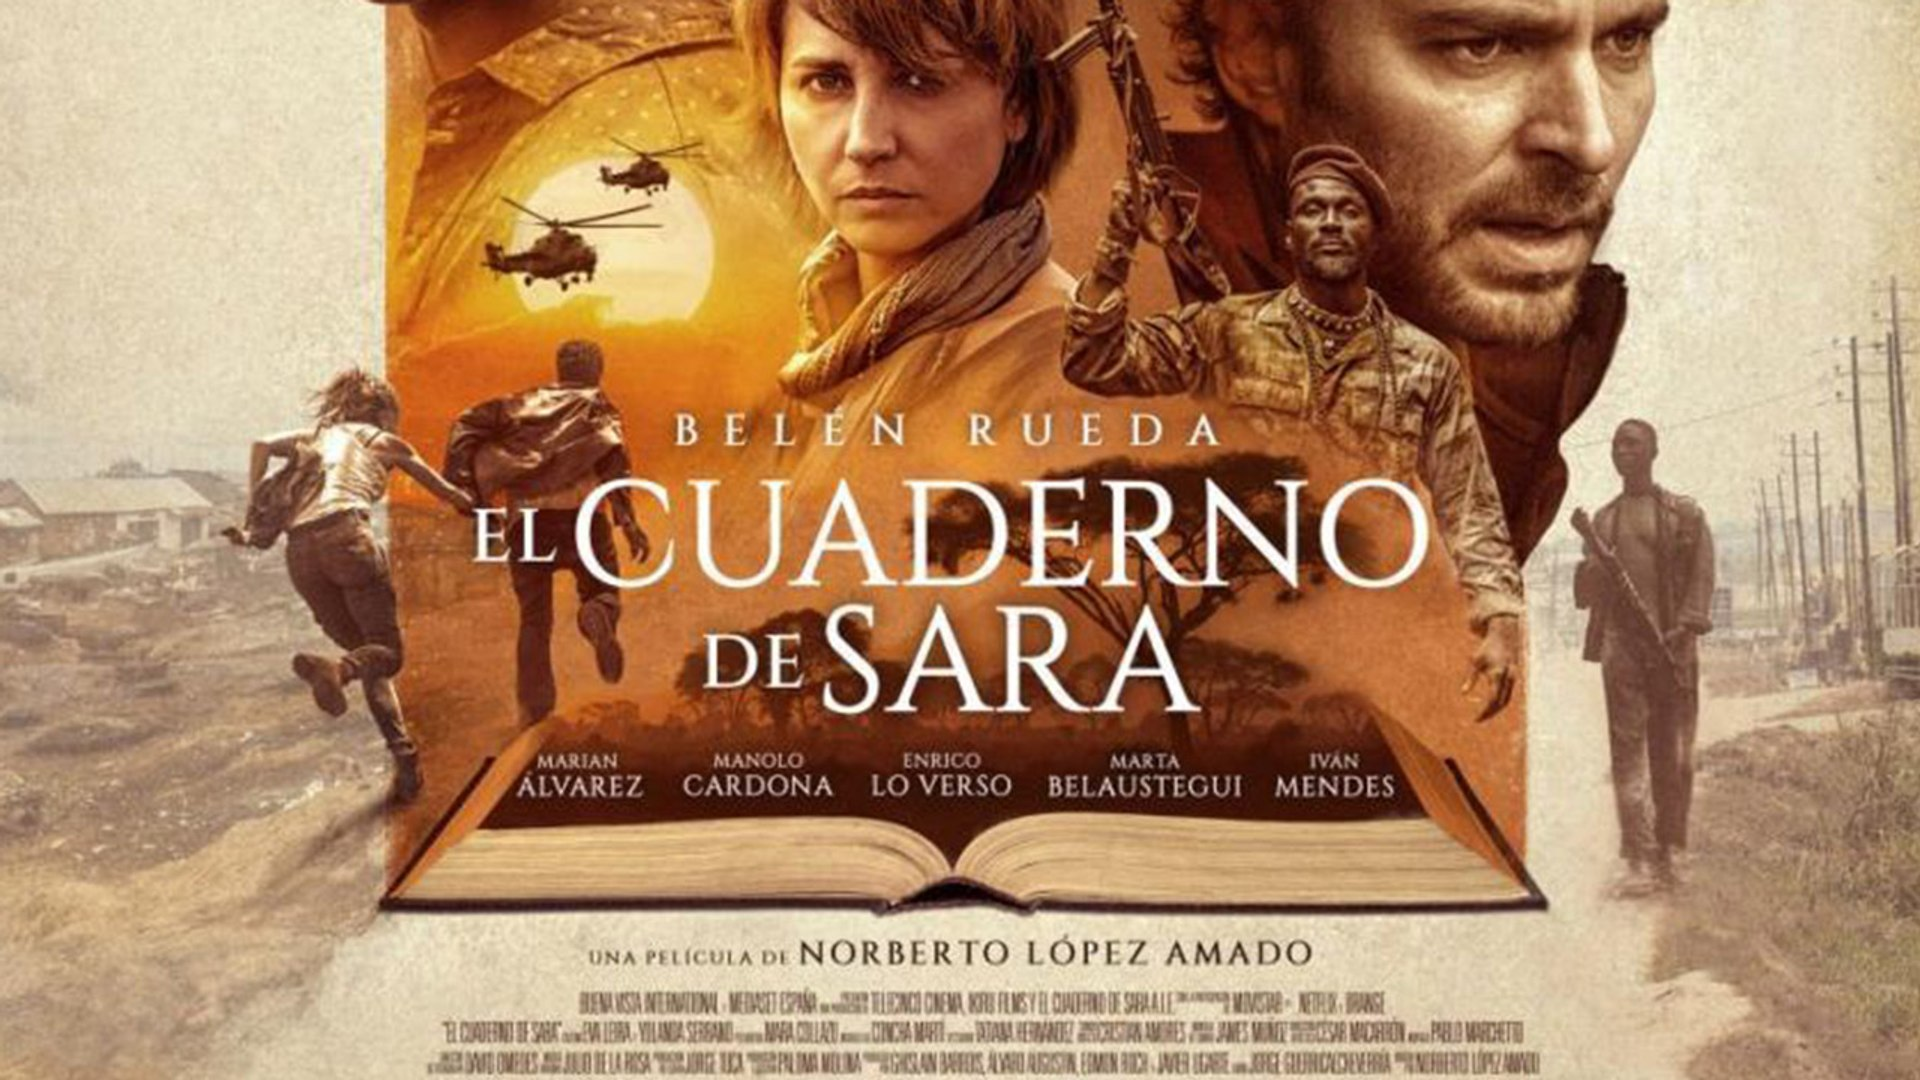 El Cuaderno De Sara 2017 Hd Gratis En Audio Latino Vídeo Dailymotion